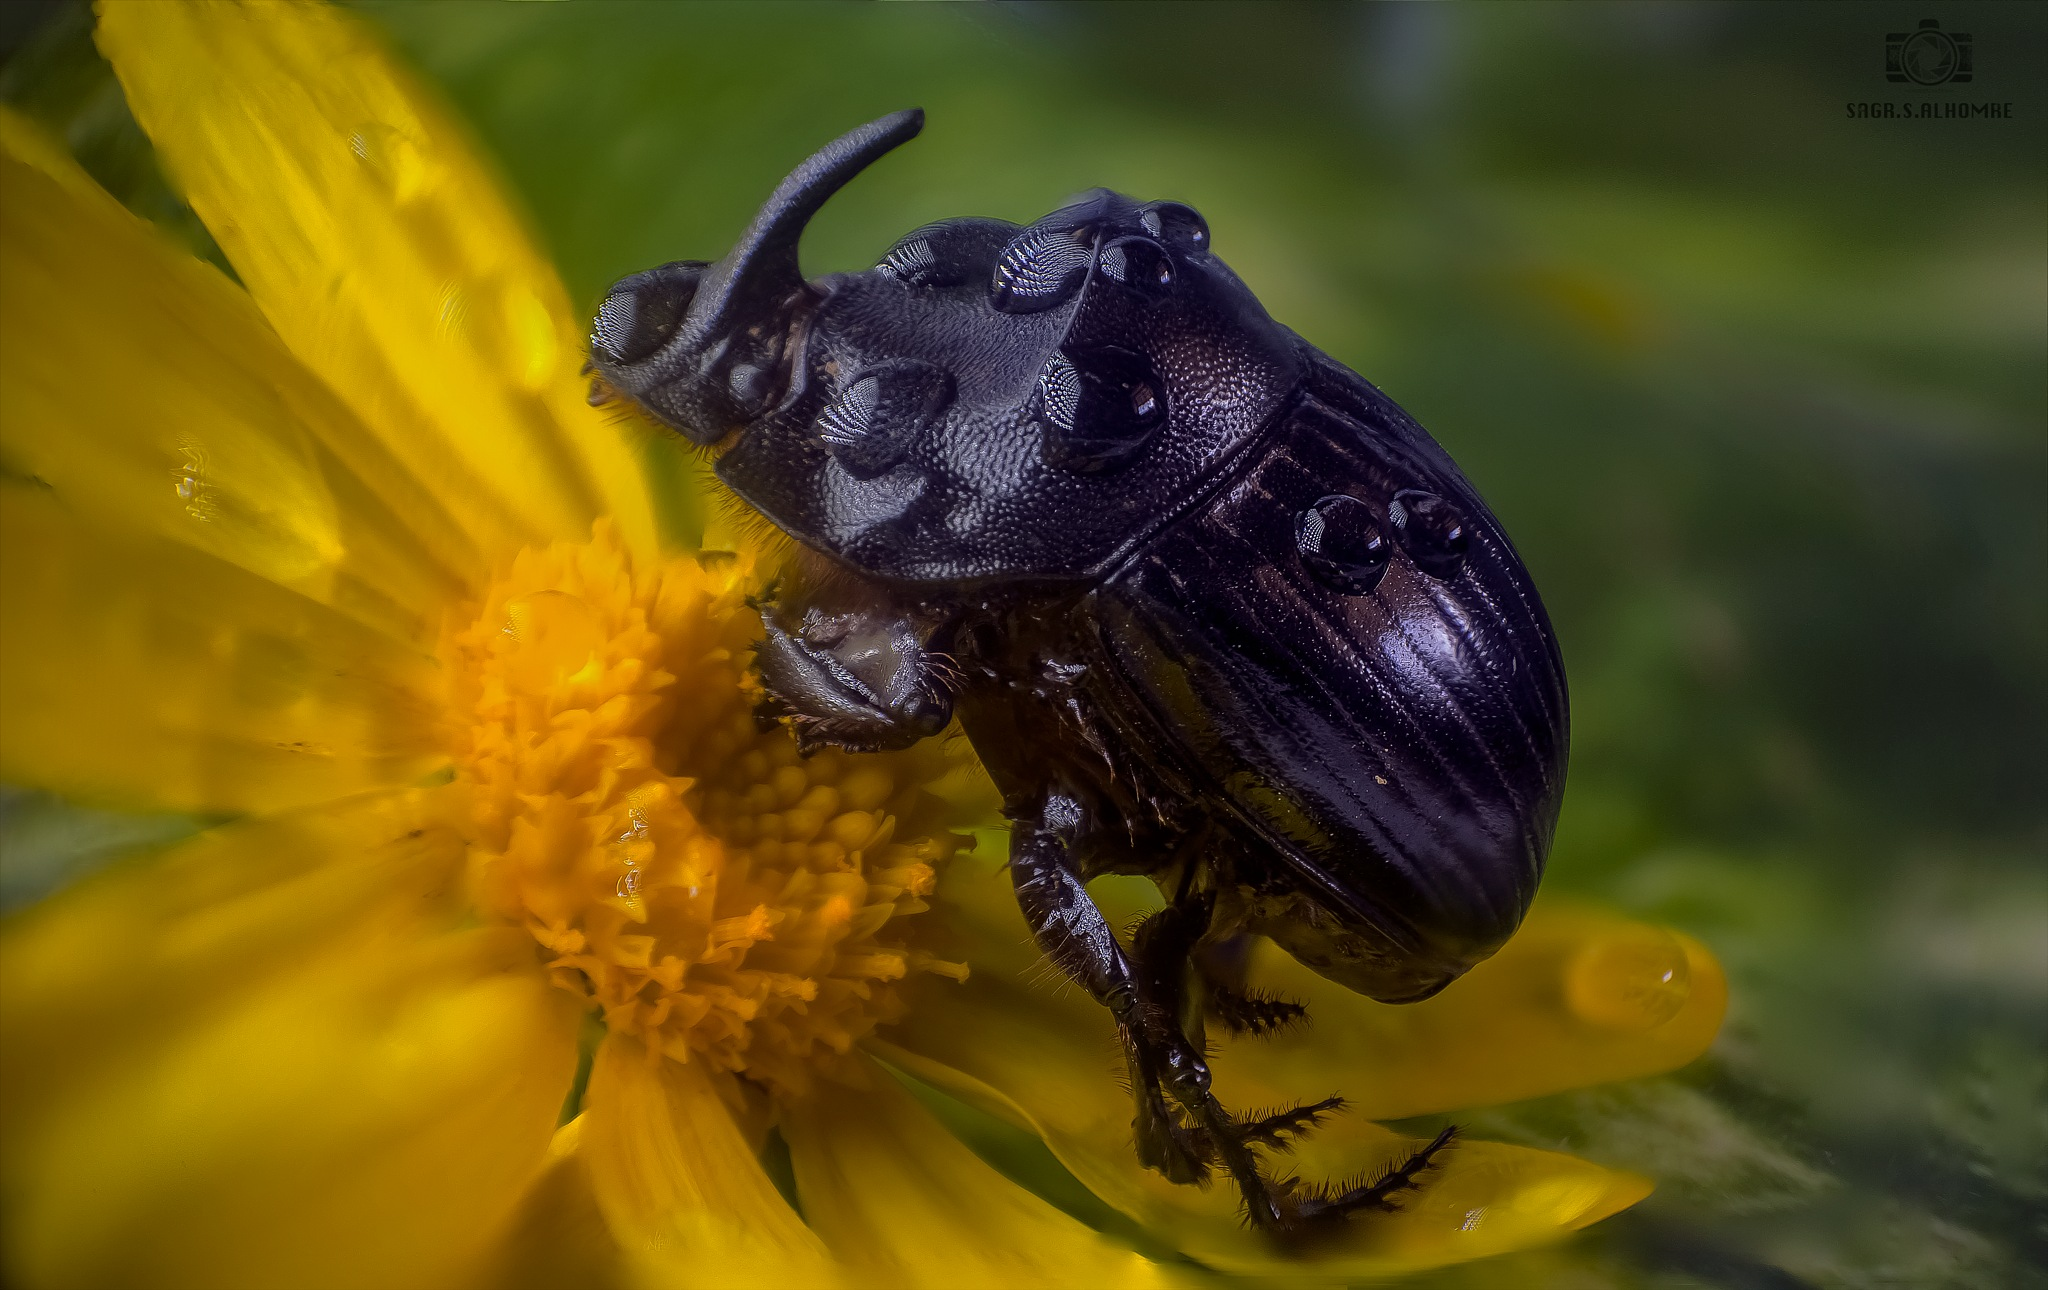 macro_2 by SSAlhomre